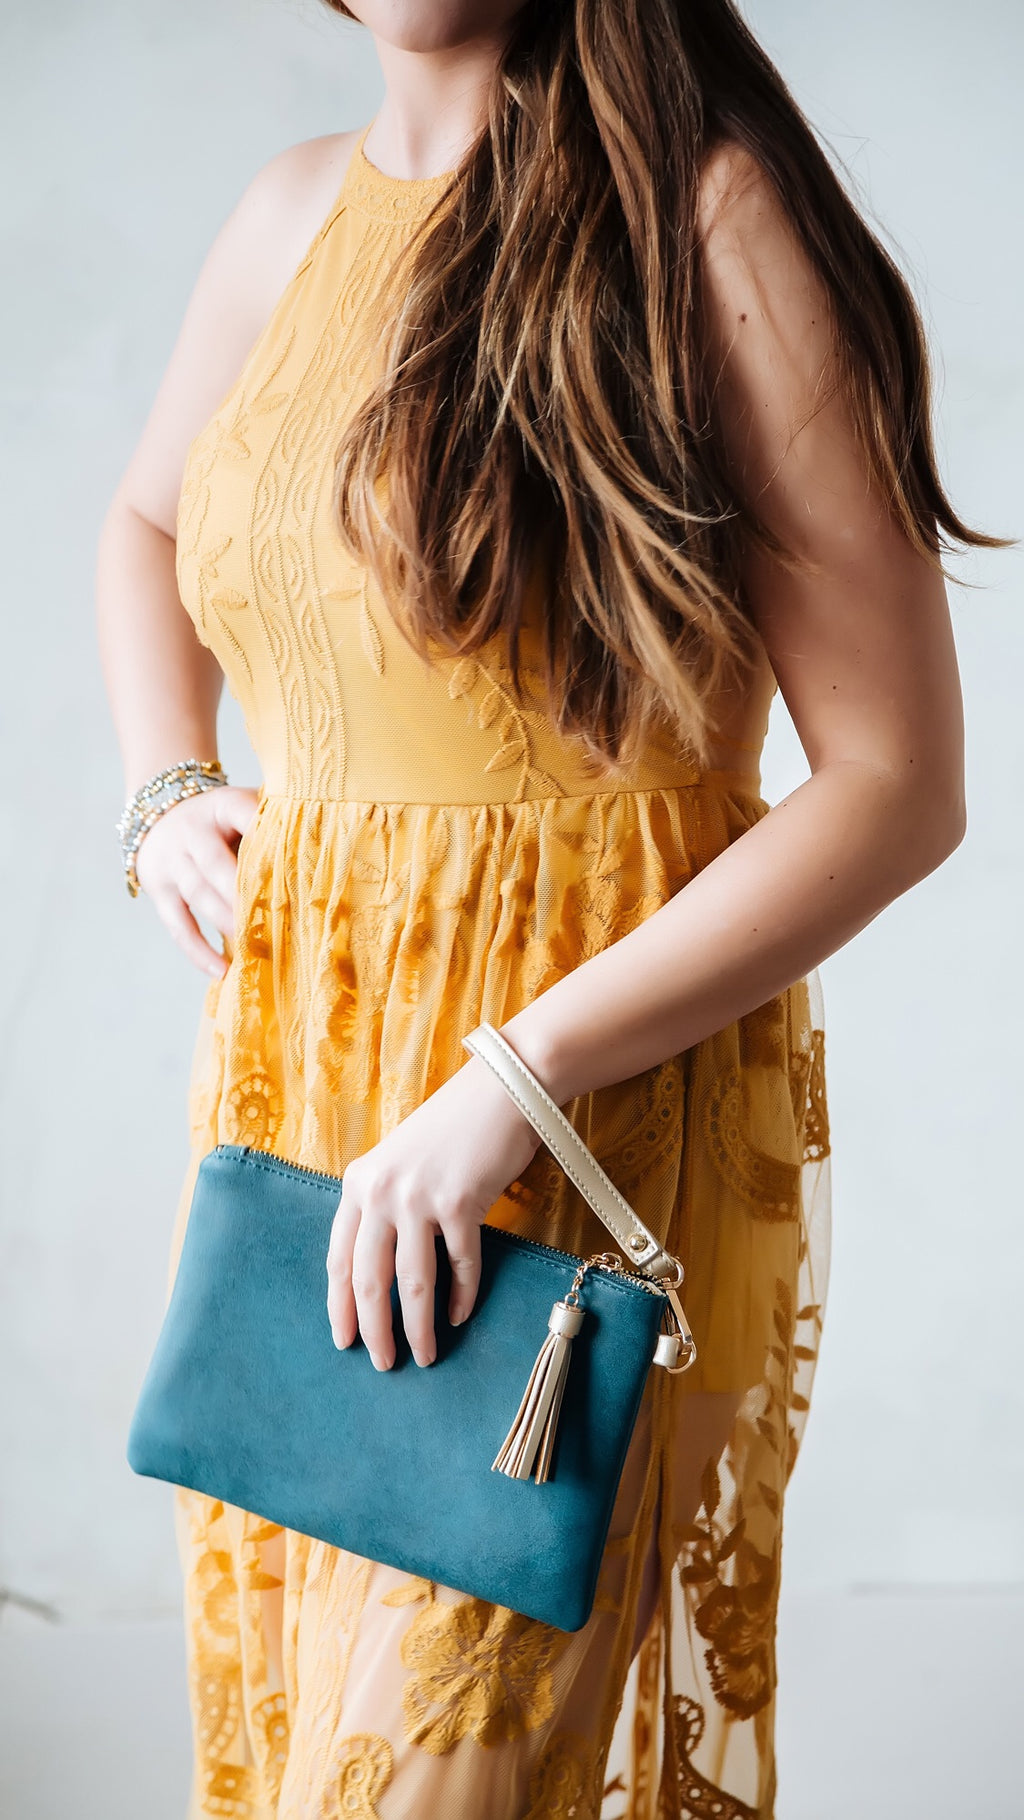 Touch of teal wristlet